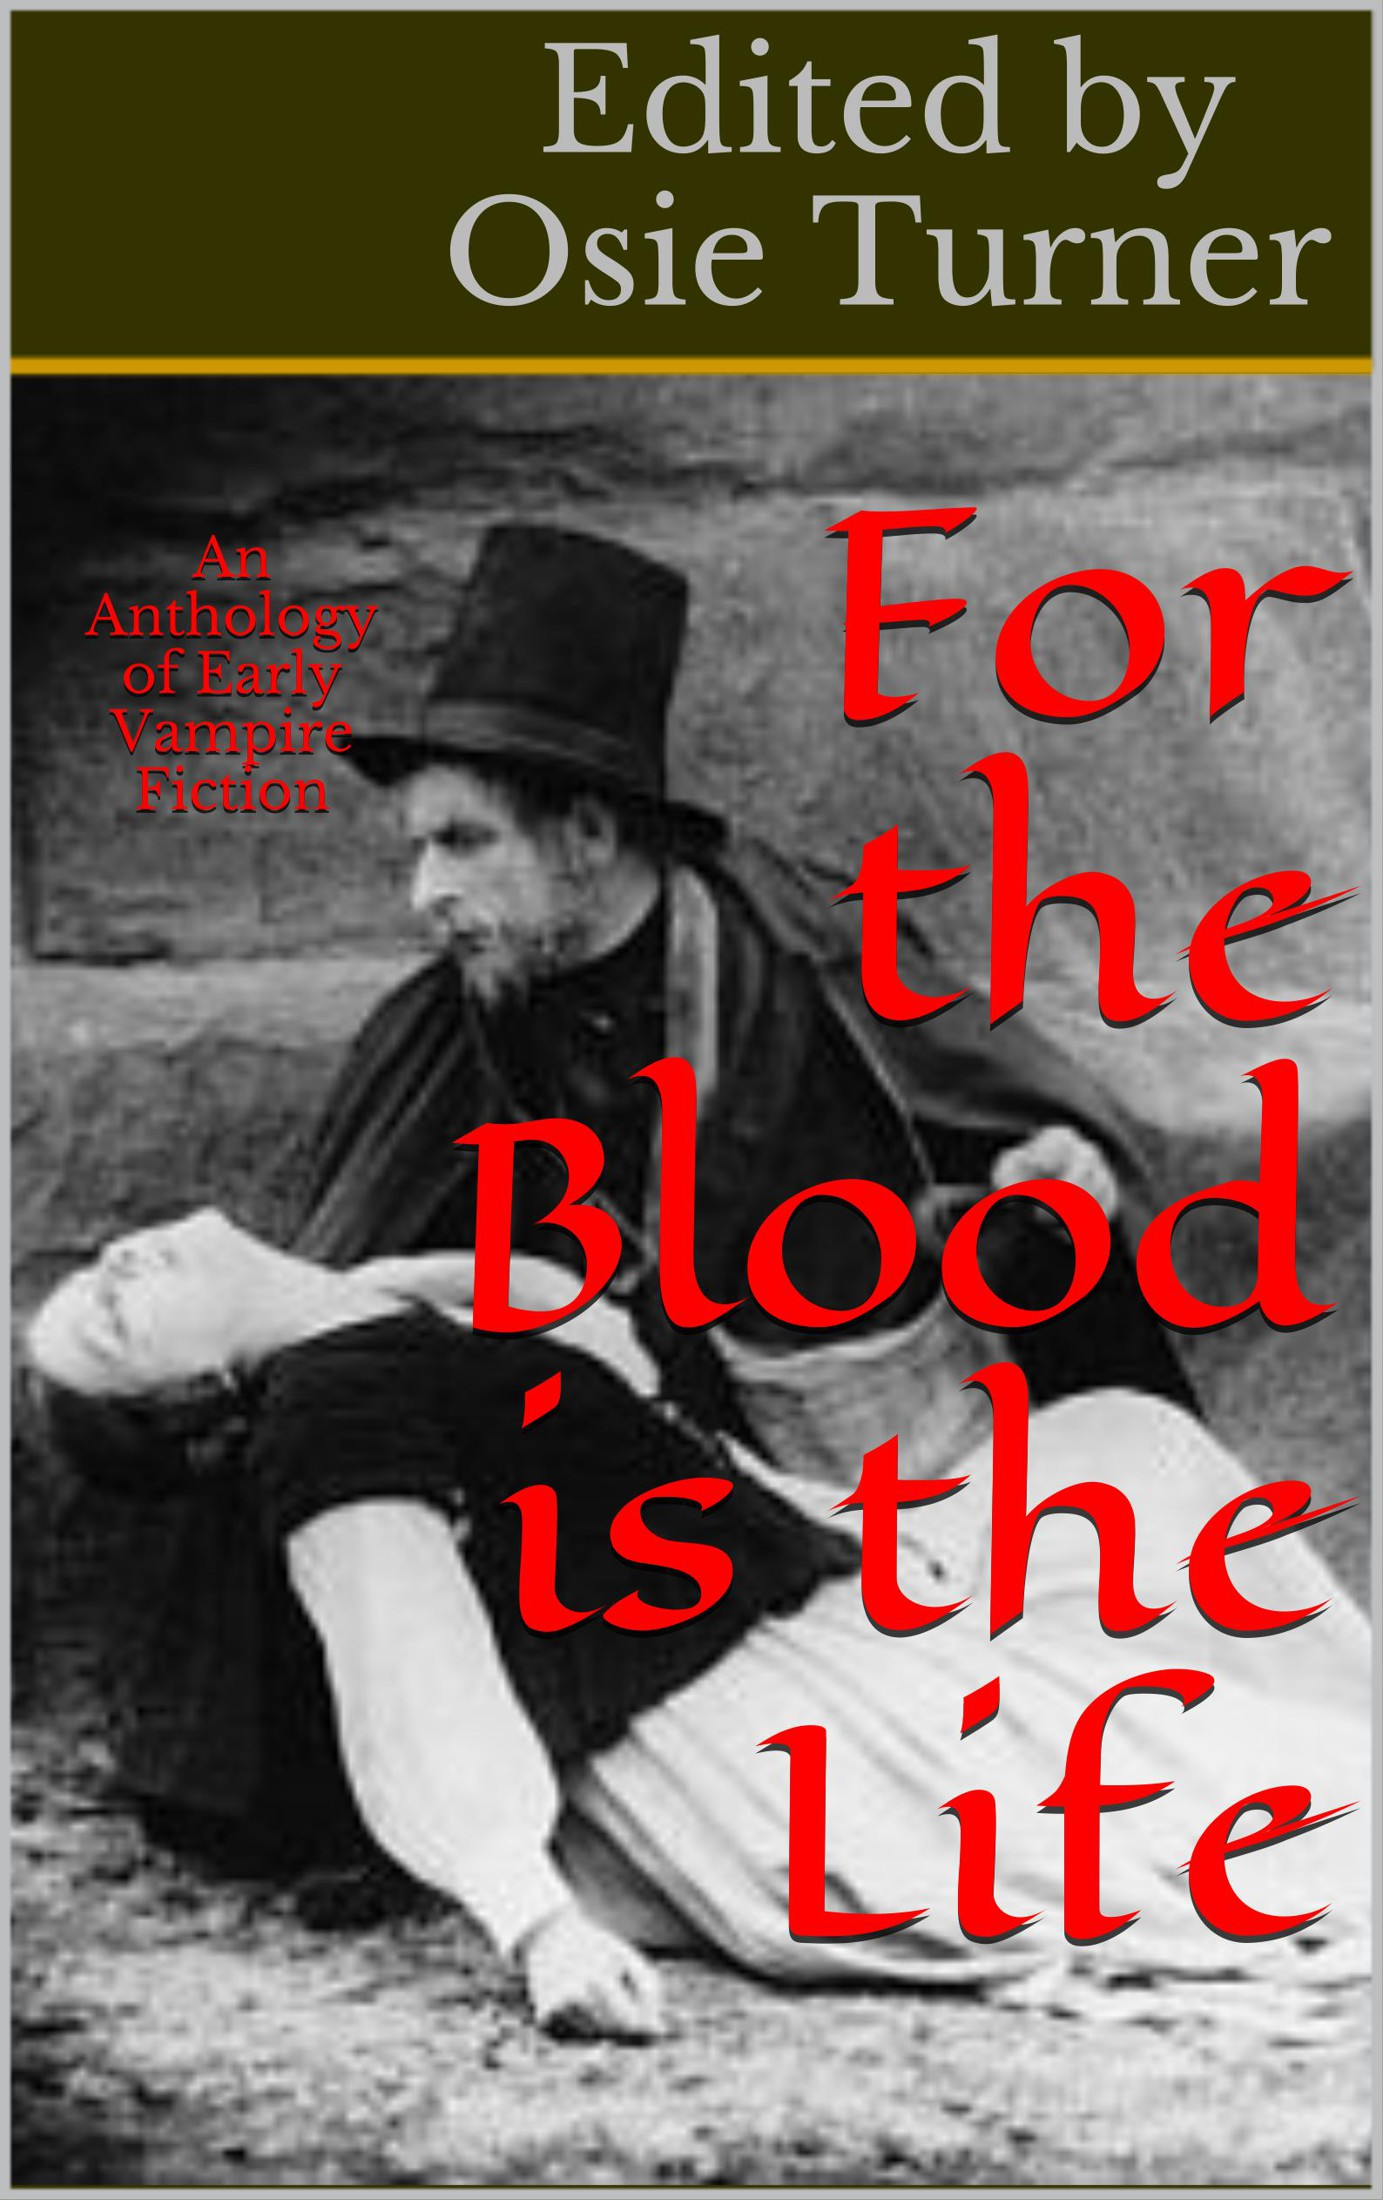 A List Of Easy Essay Topics About Vampires: 15 Fresh Ideas